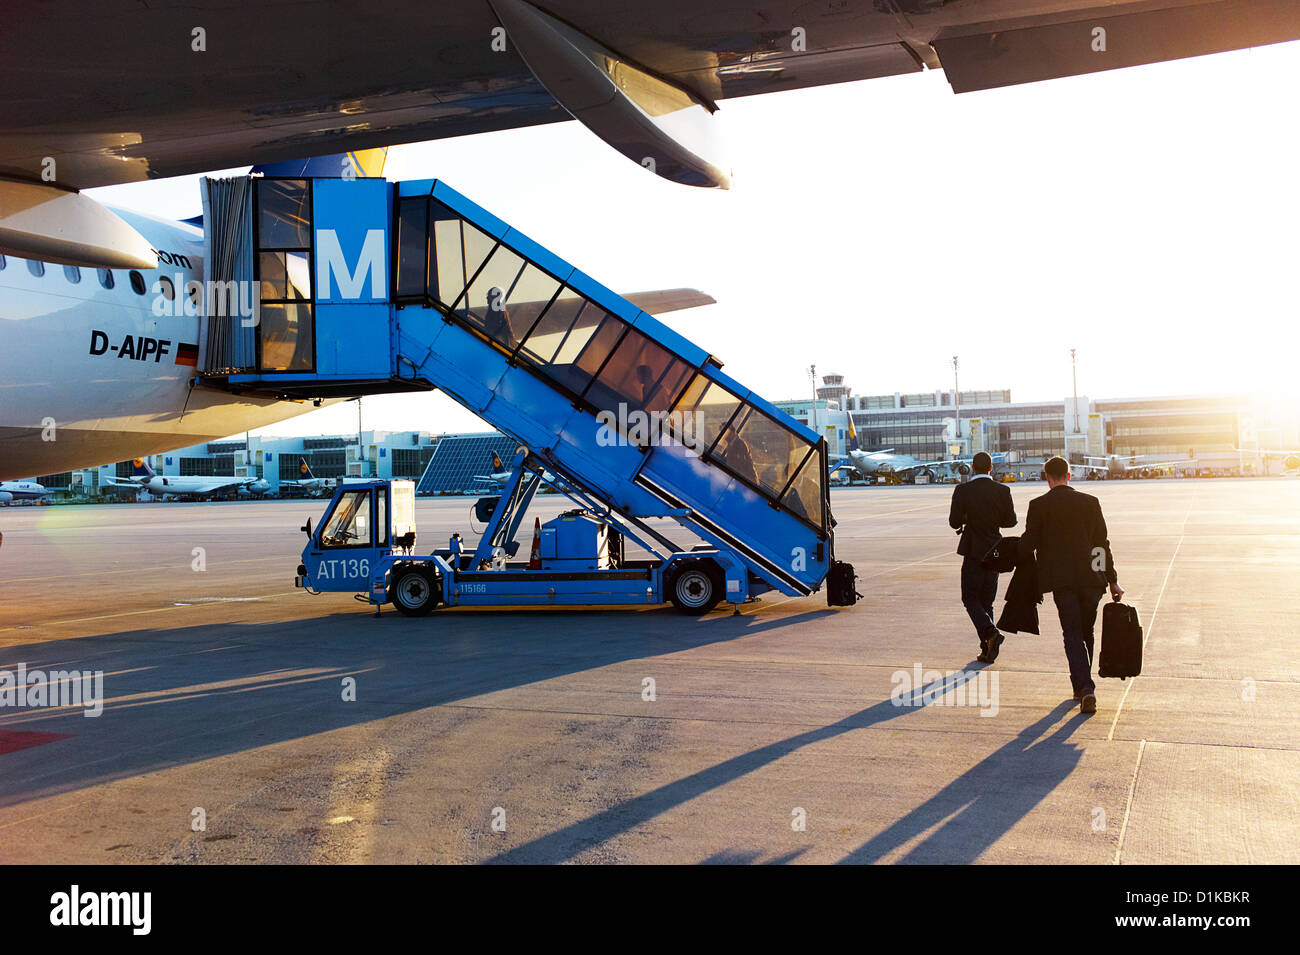 Businessmen and travelers board a plane on the tarmac at sunset - Stock Image